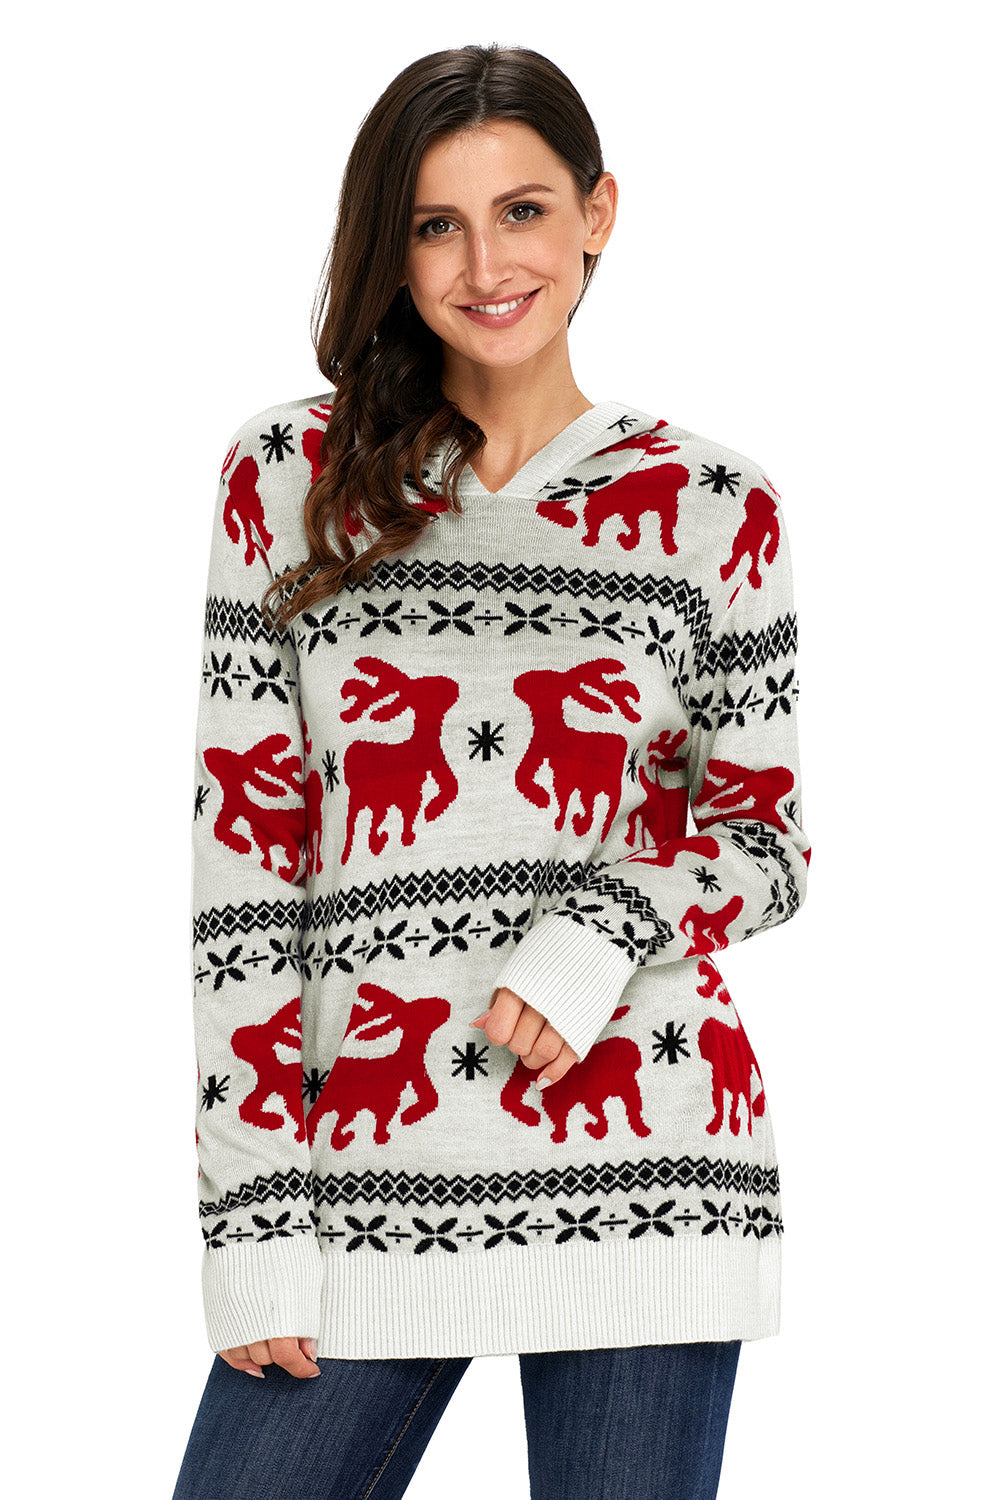 A| Chicloth Cute Christmas Reindeer Knit White Hooded Sweater-Sweaters-Chicloth